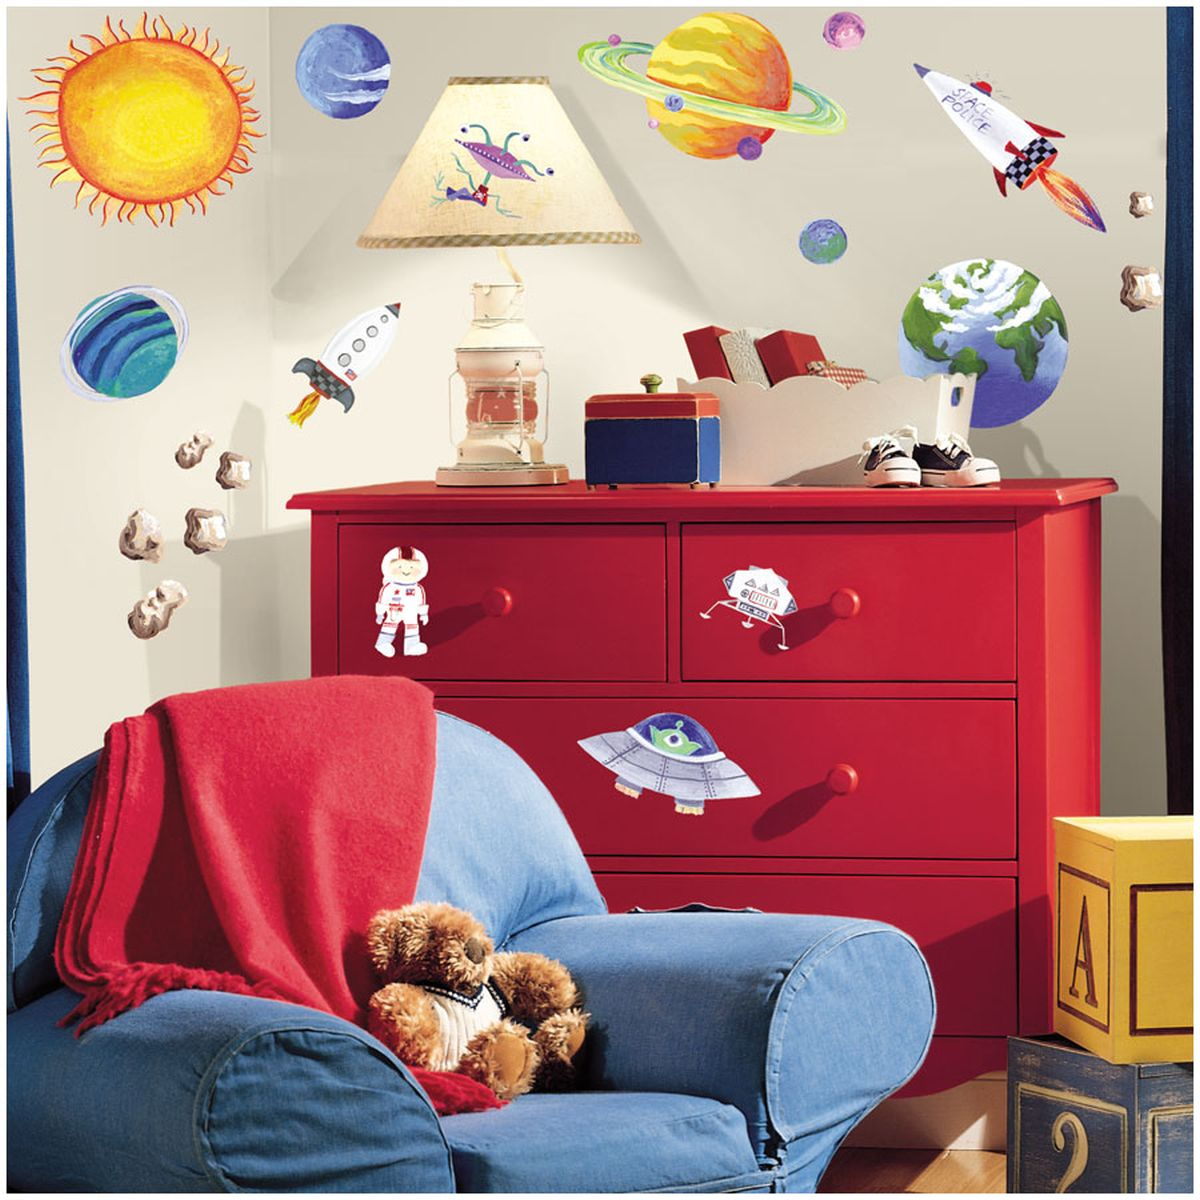 Art For Kids Teppiche Weltraum And Raketen 39outer Space 39 Wandsticker Von Roommates